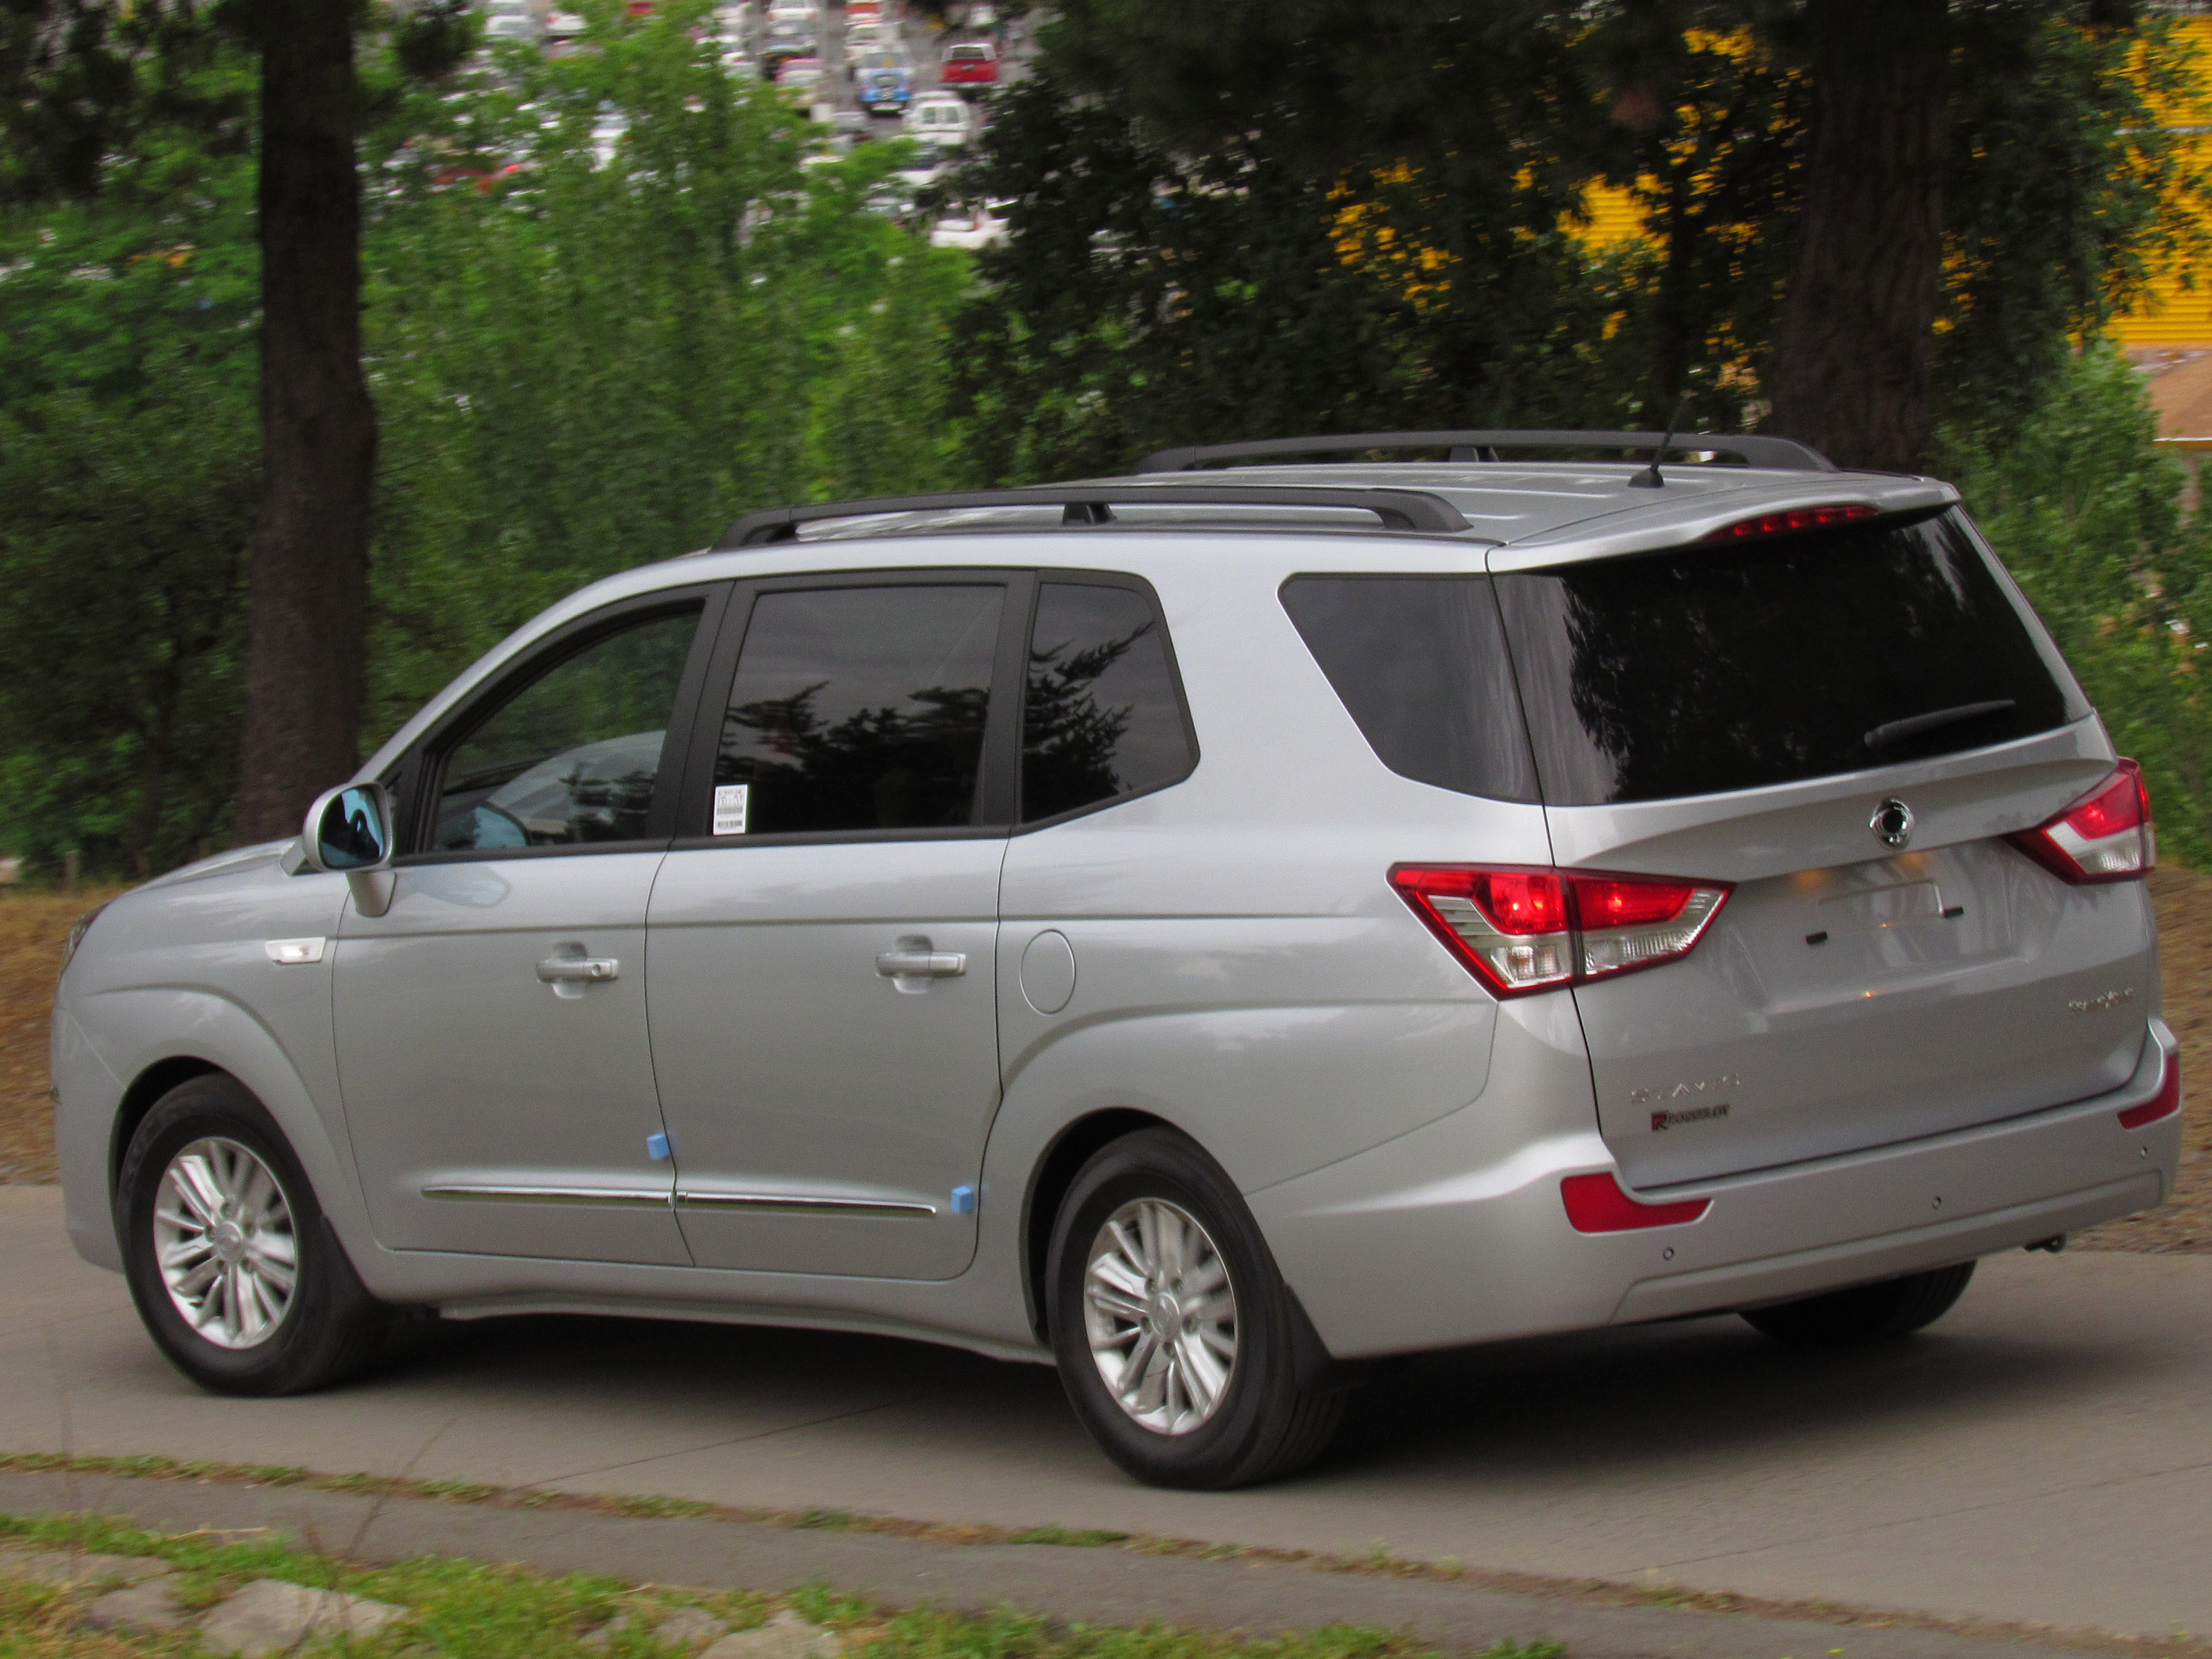 Used Cars Oxnard >> Find Photos Of 2013 Ssangyong Stavic People Mover Reviews   Autos Post